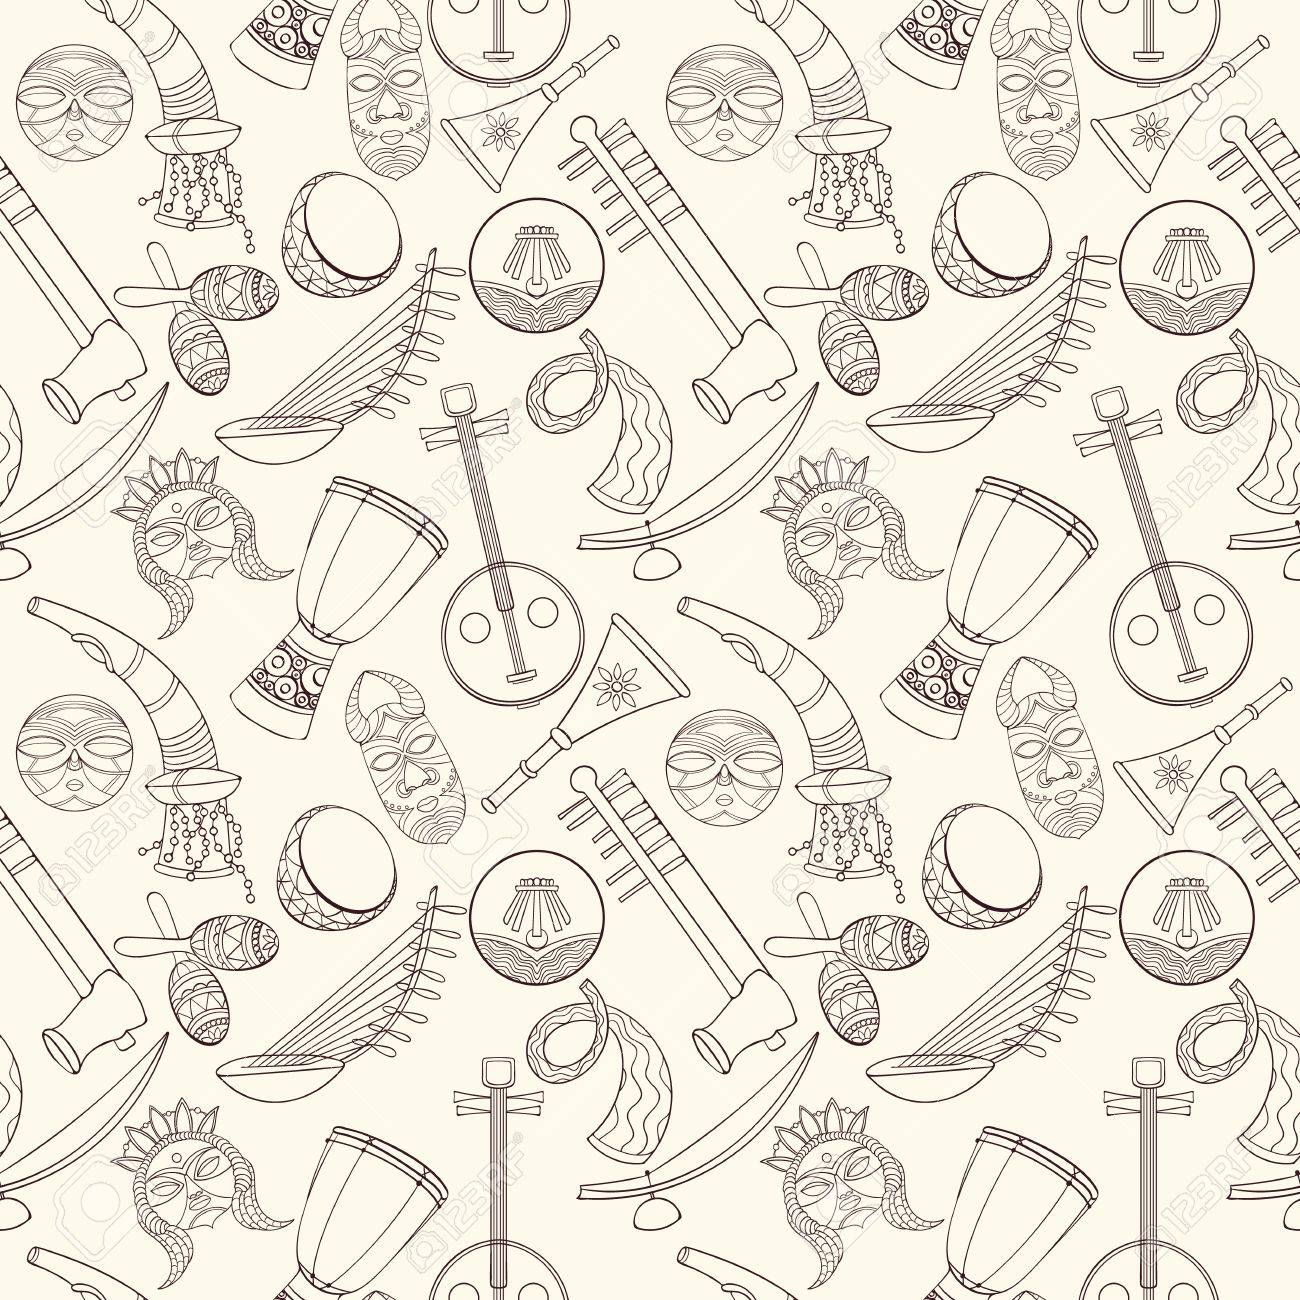 Most Inspiring Wallpaper Music Pattern - 66784721-hand-drawn-seamless-african-music-pattern-vector-illustration-can-be-used-for-wallpaper-website-back  Pic_201210.jpg